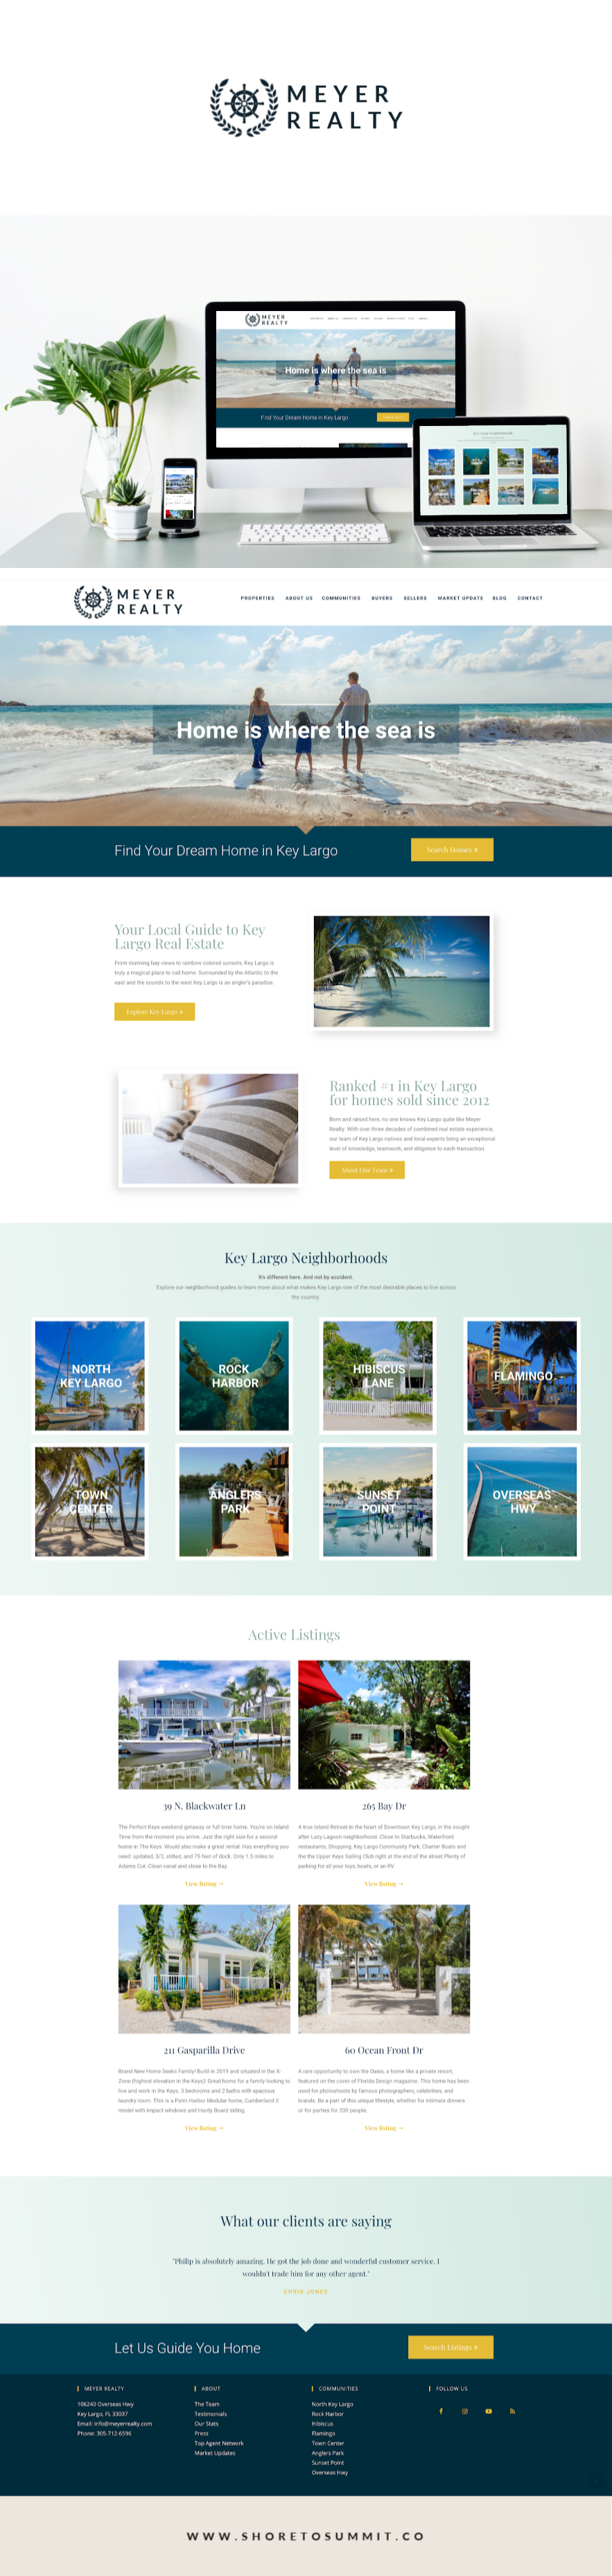 real estate website design_meyer.png